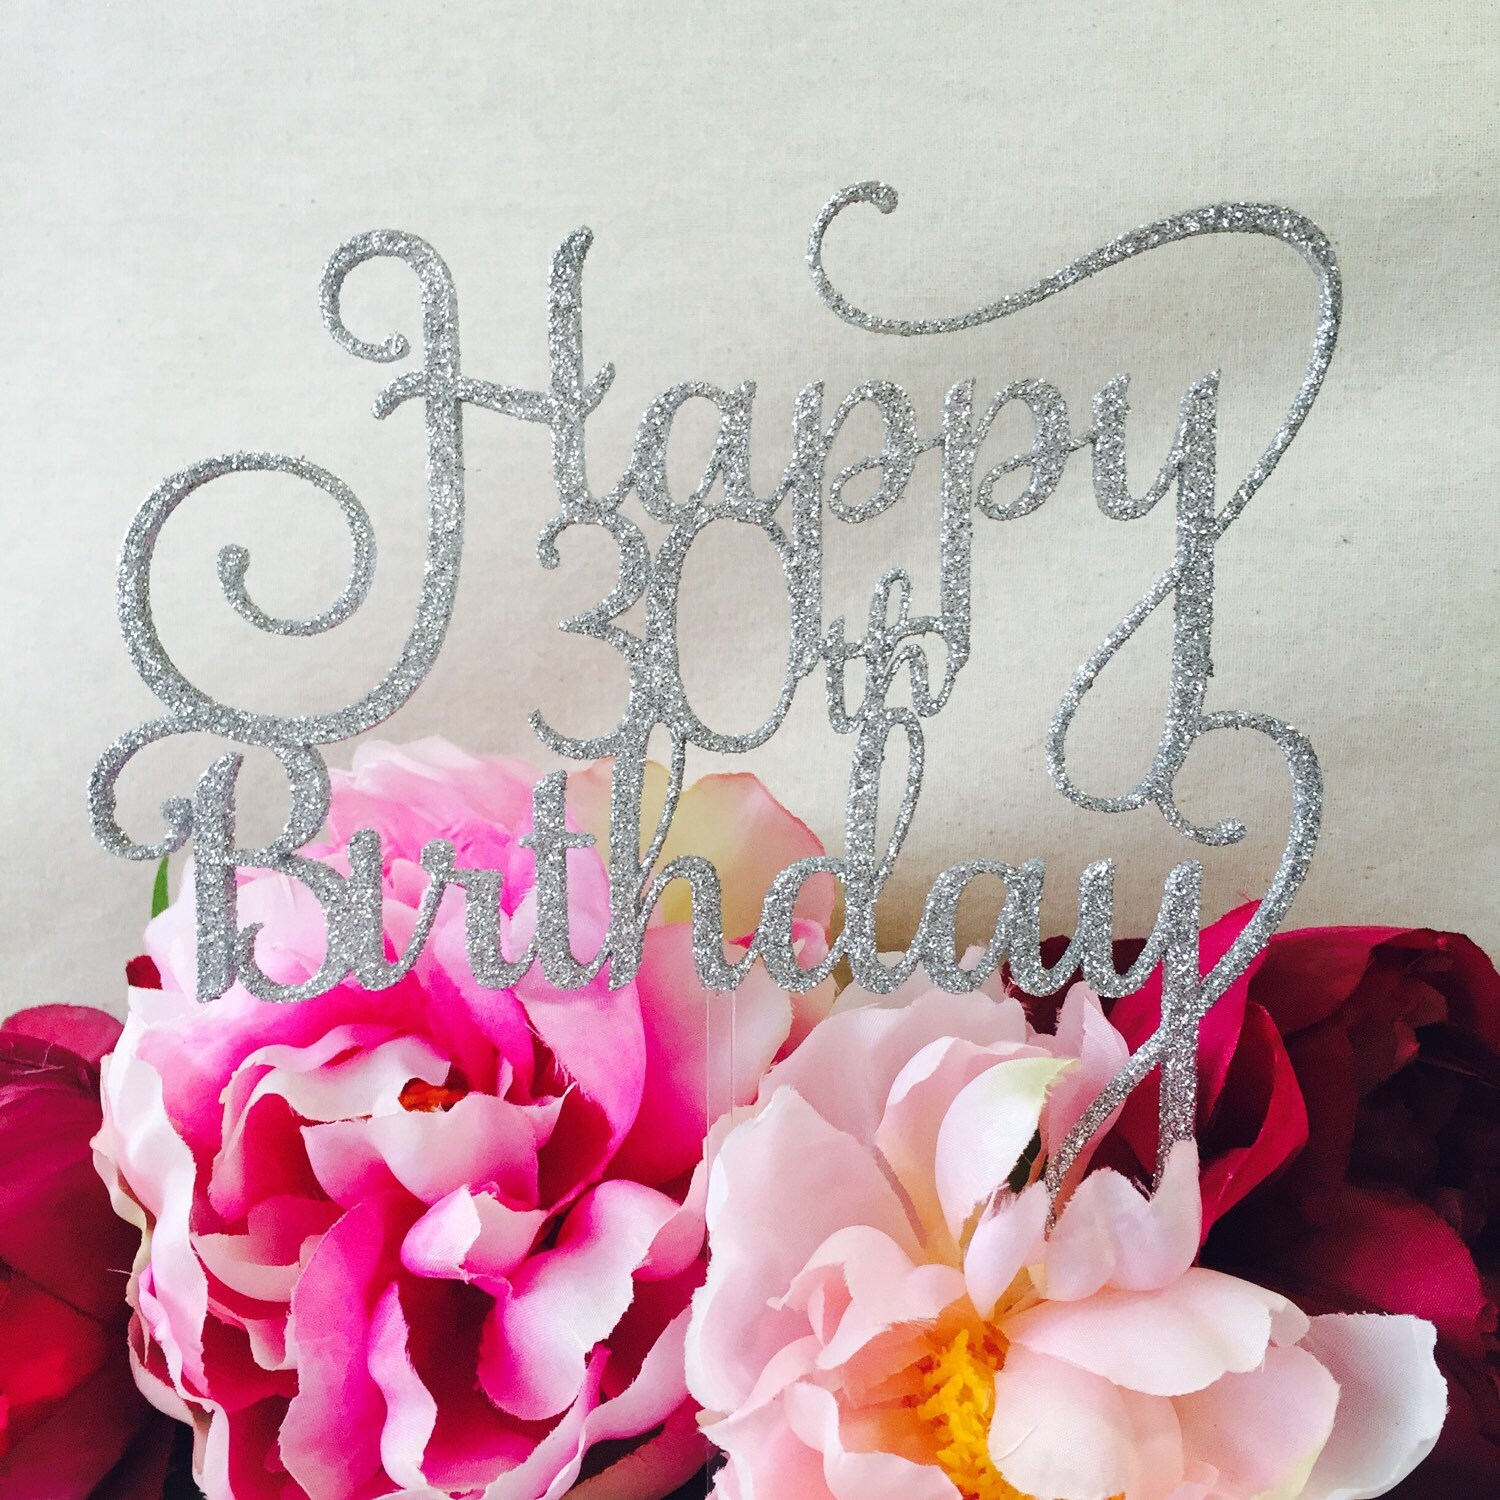 Happy 30th birthday cake topper cake toppers cake decoration zoom izmirmasajfo Images